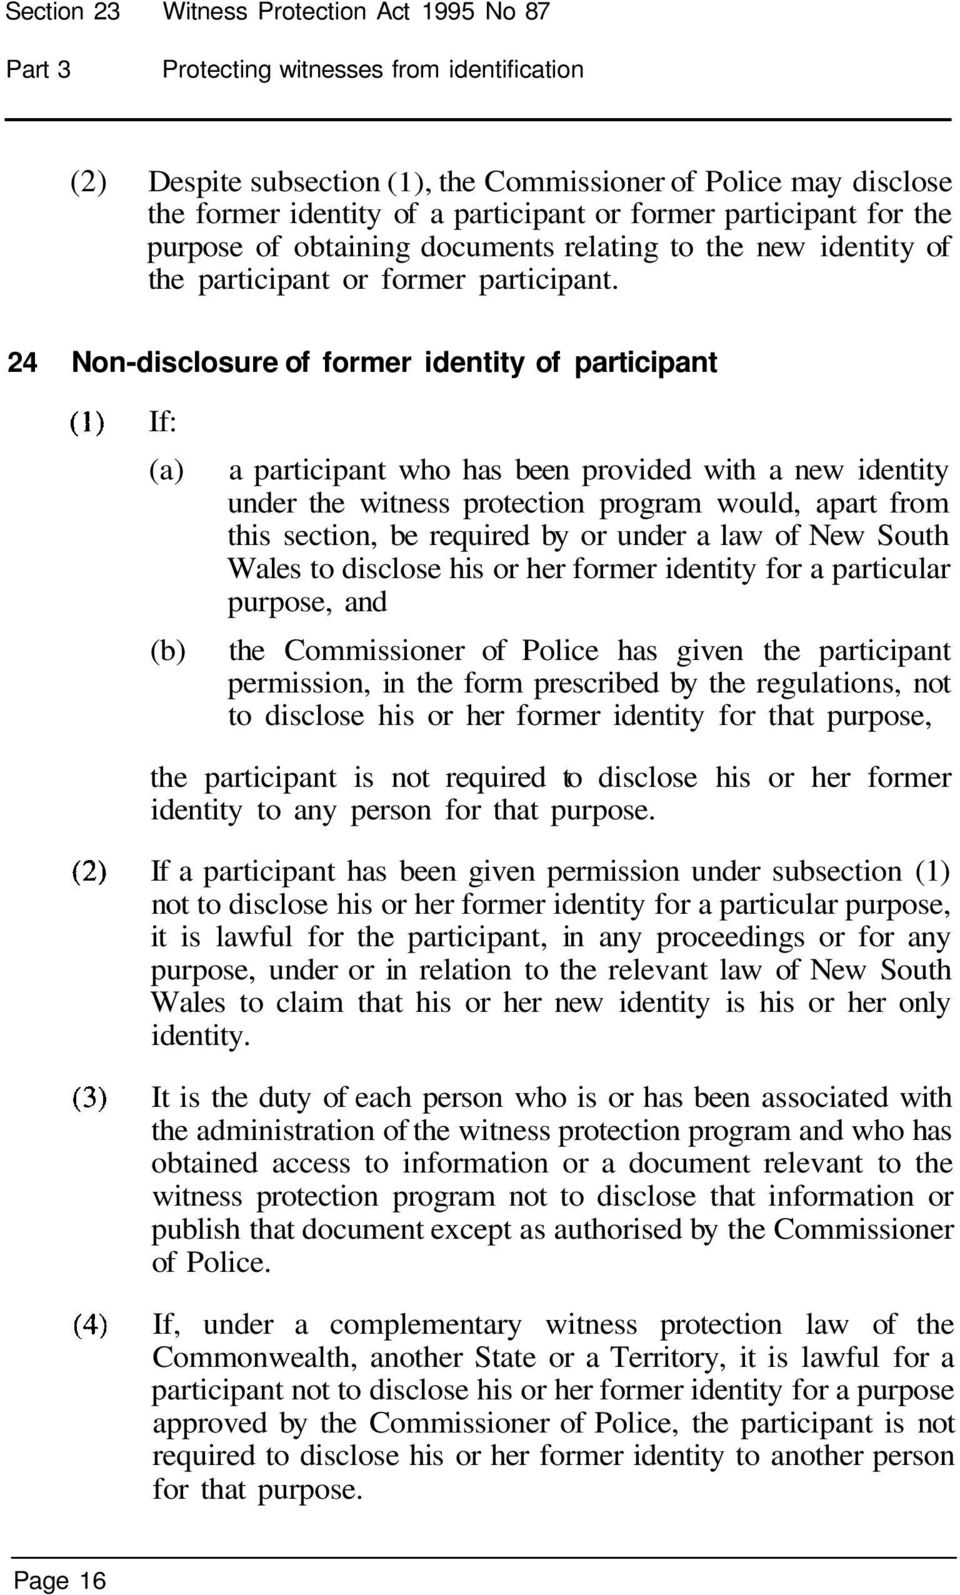 24 Non-disclosure of former identity of participant If: a participant who has been provided with a new identity under the witness protection program would, apart from this section, be required by or